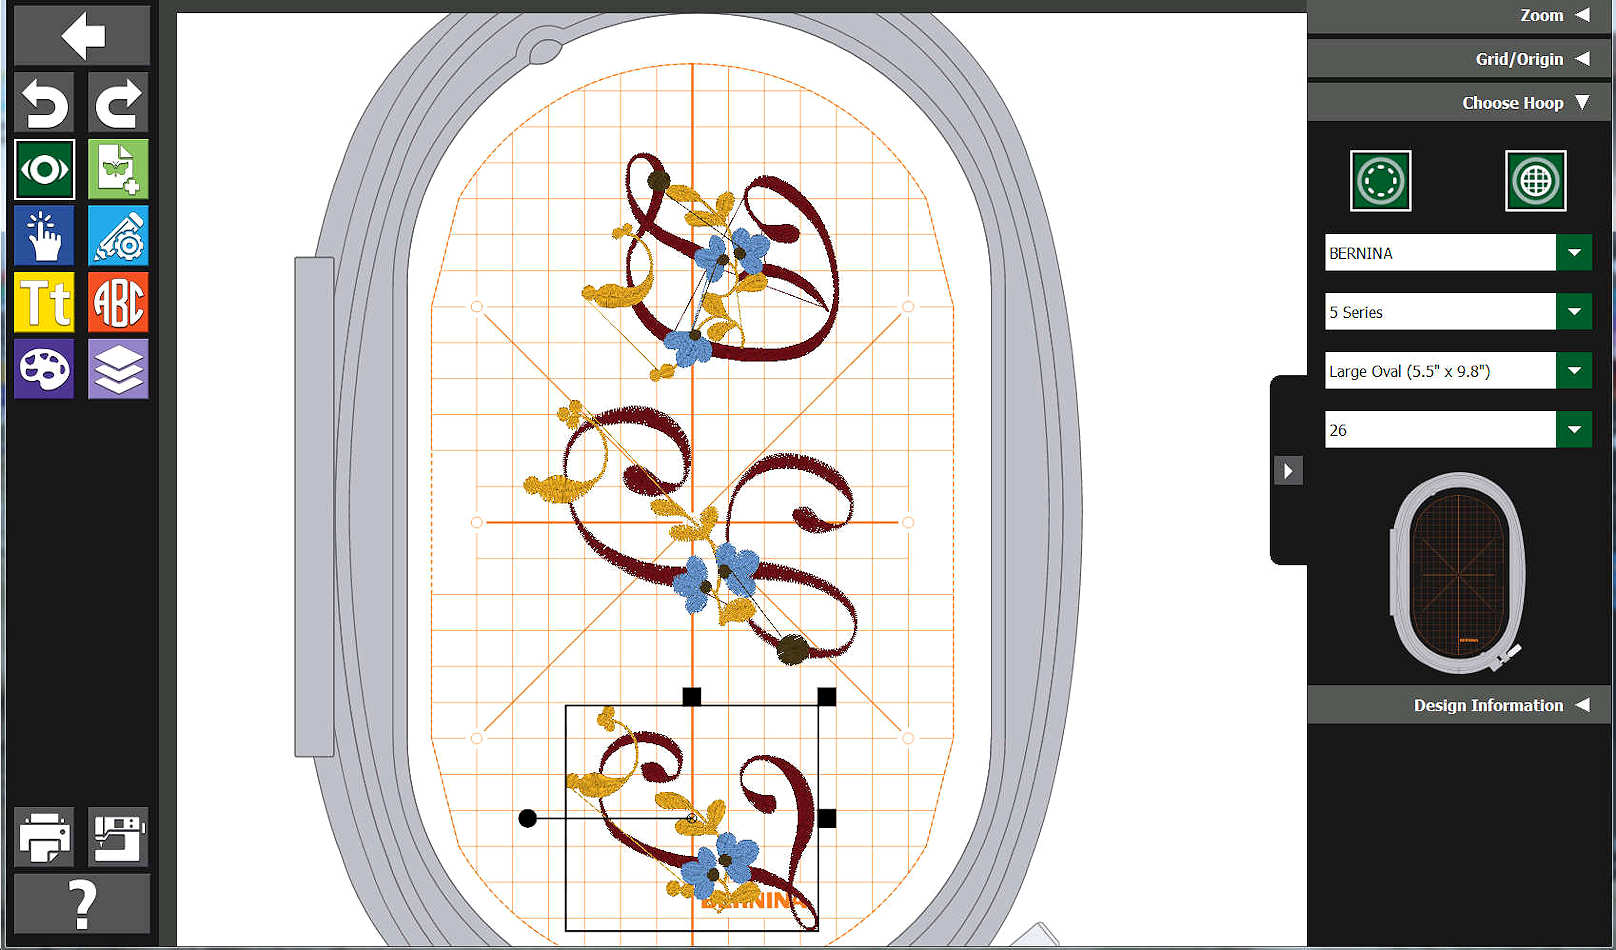 hight resolution of we hope the person saves the on the machine design onto the embroidery machine s usb connection and returns such to us for use with bernina toolbox